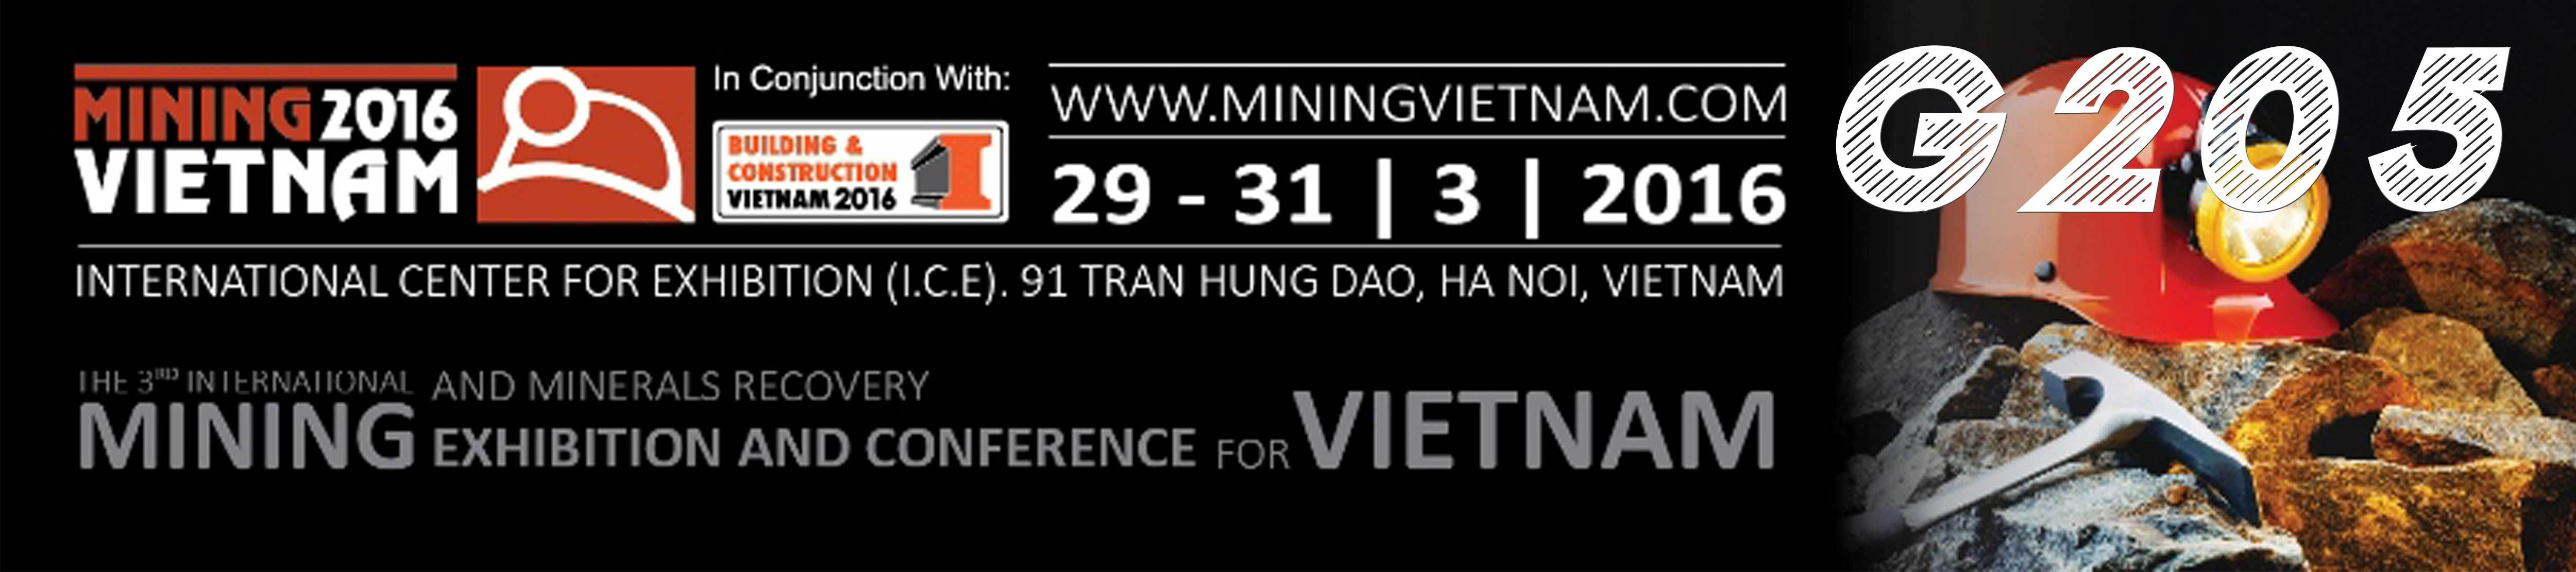 Welcome to Mining Vietnam